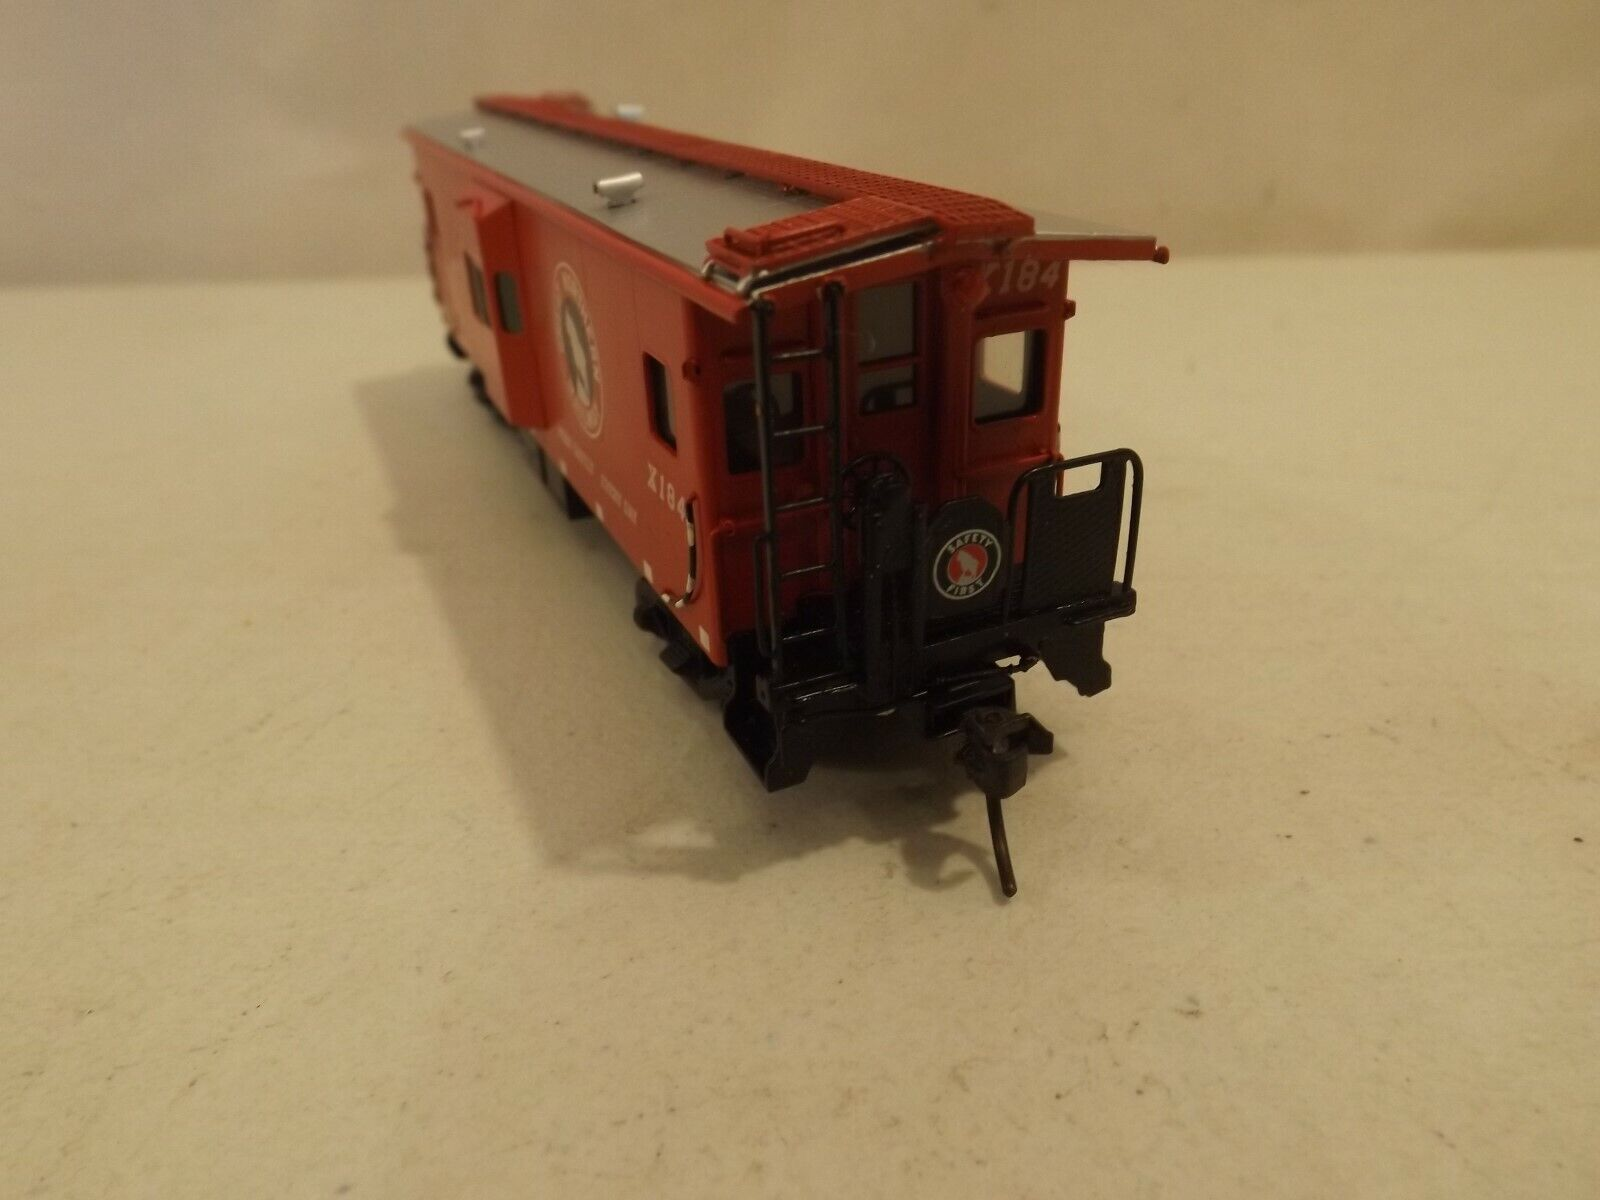 HO Oriental Limited brass Great Northern bay window caboose in in in original scatola 09a179